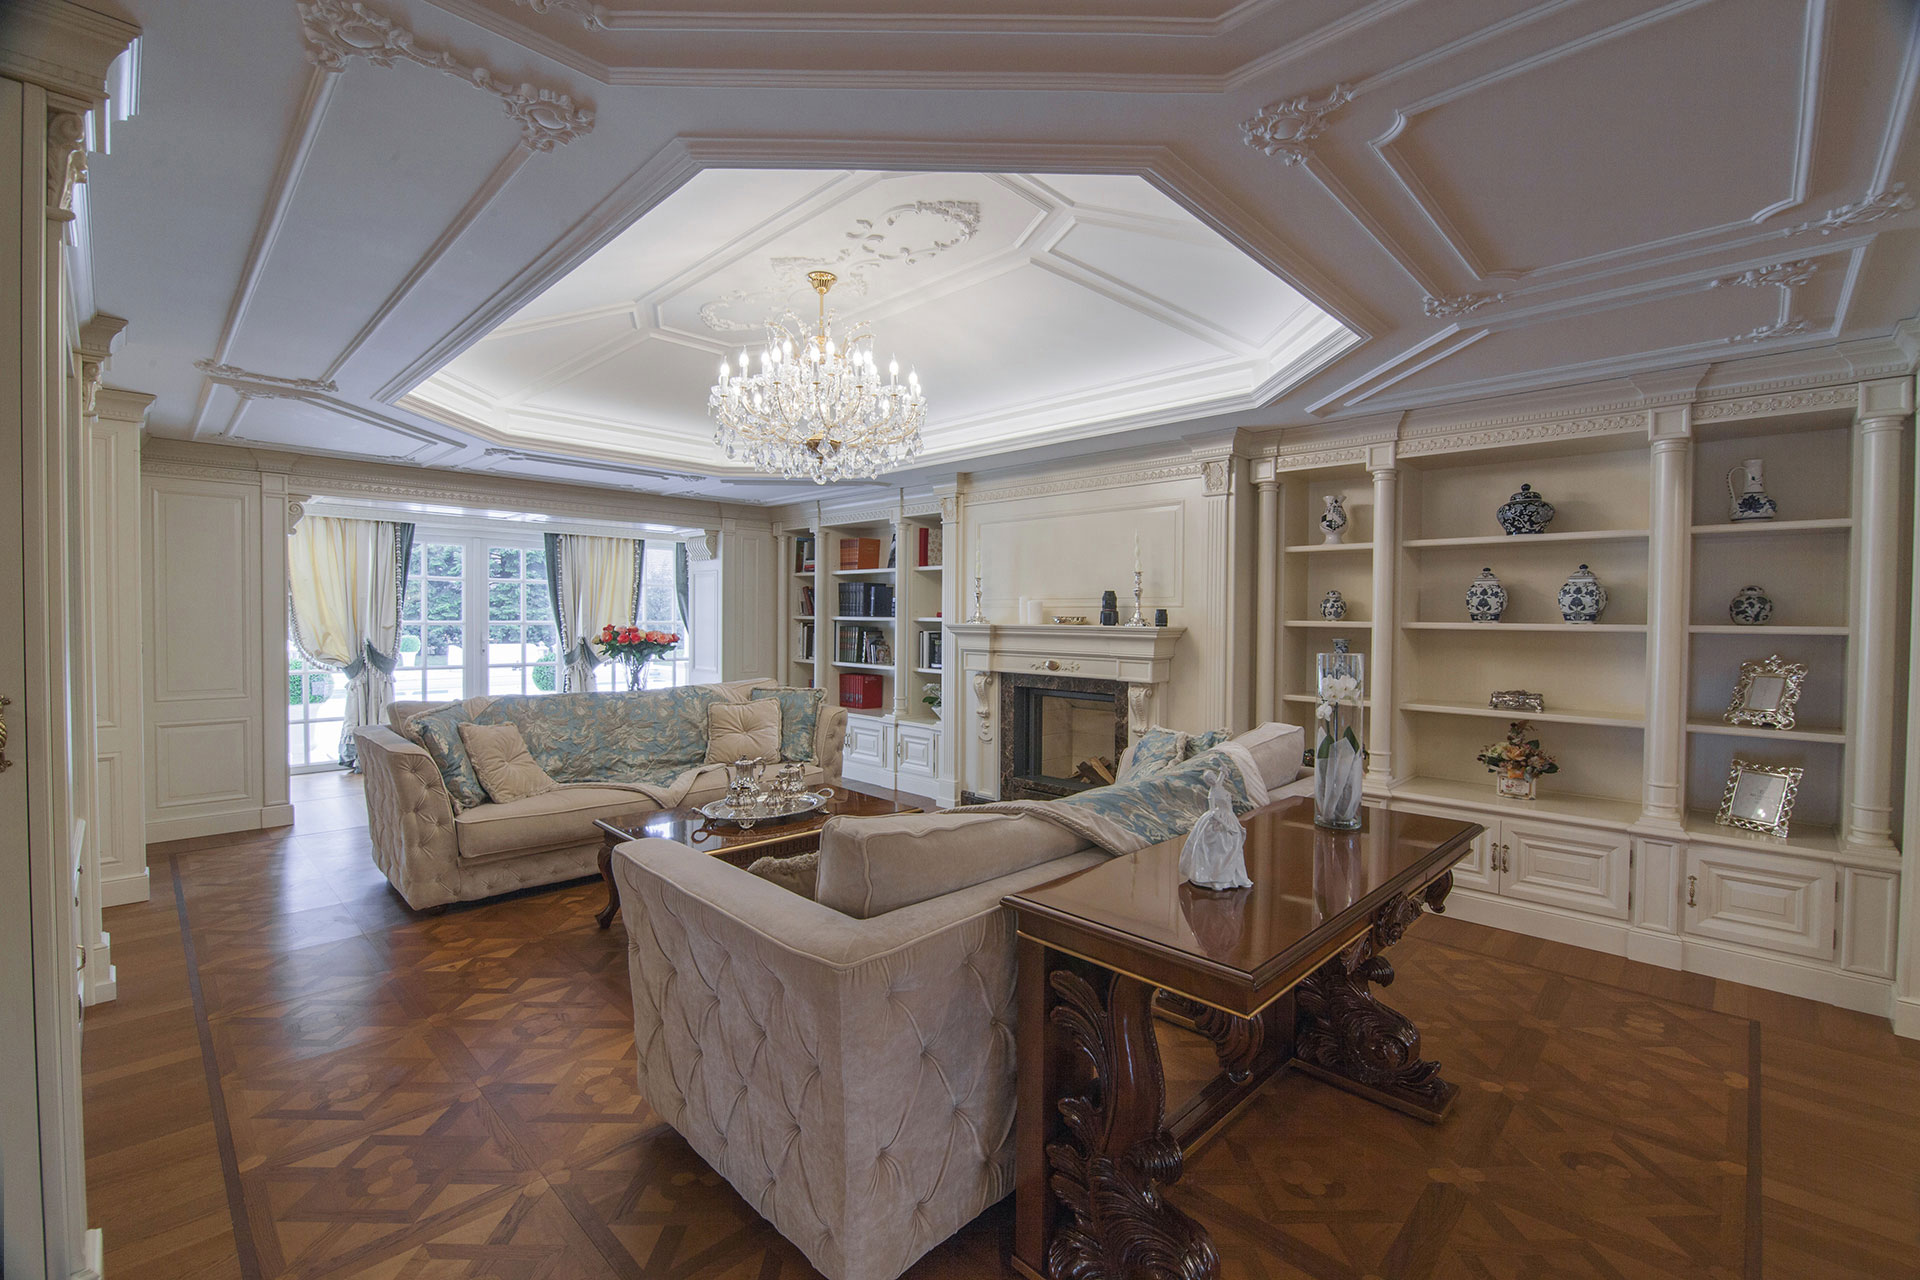 Faoma bespoke classic luxury living room